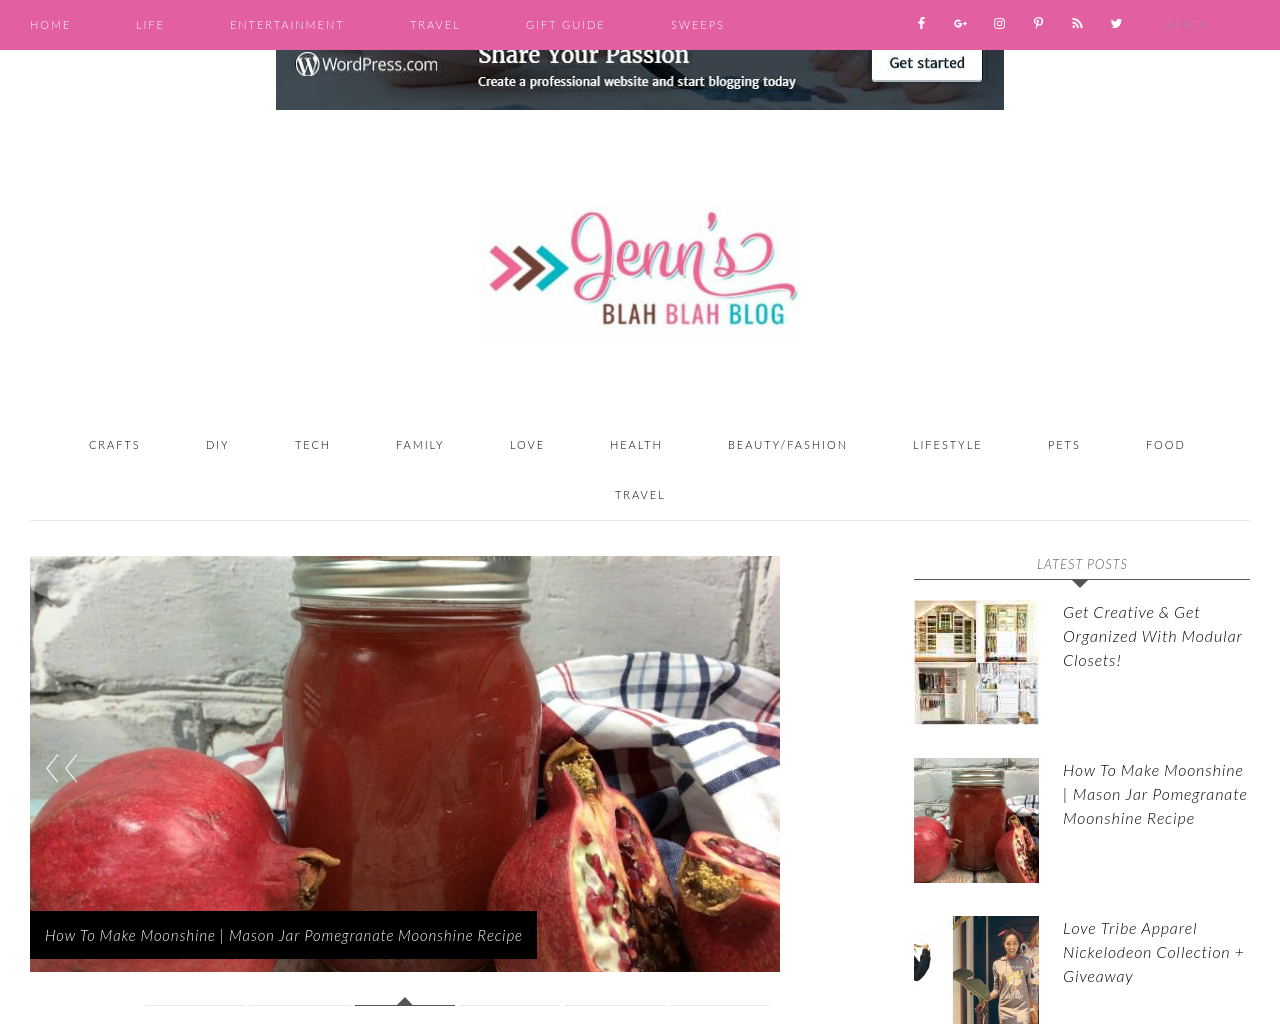 Jenn's-Blah-Blah-Blog-Advertising-Reviews-Pricing